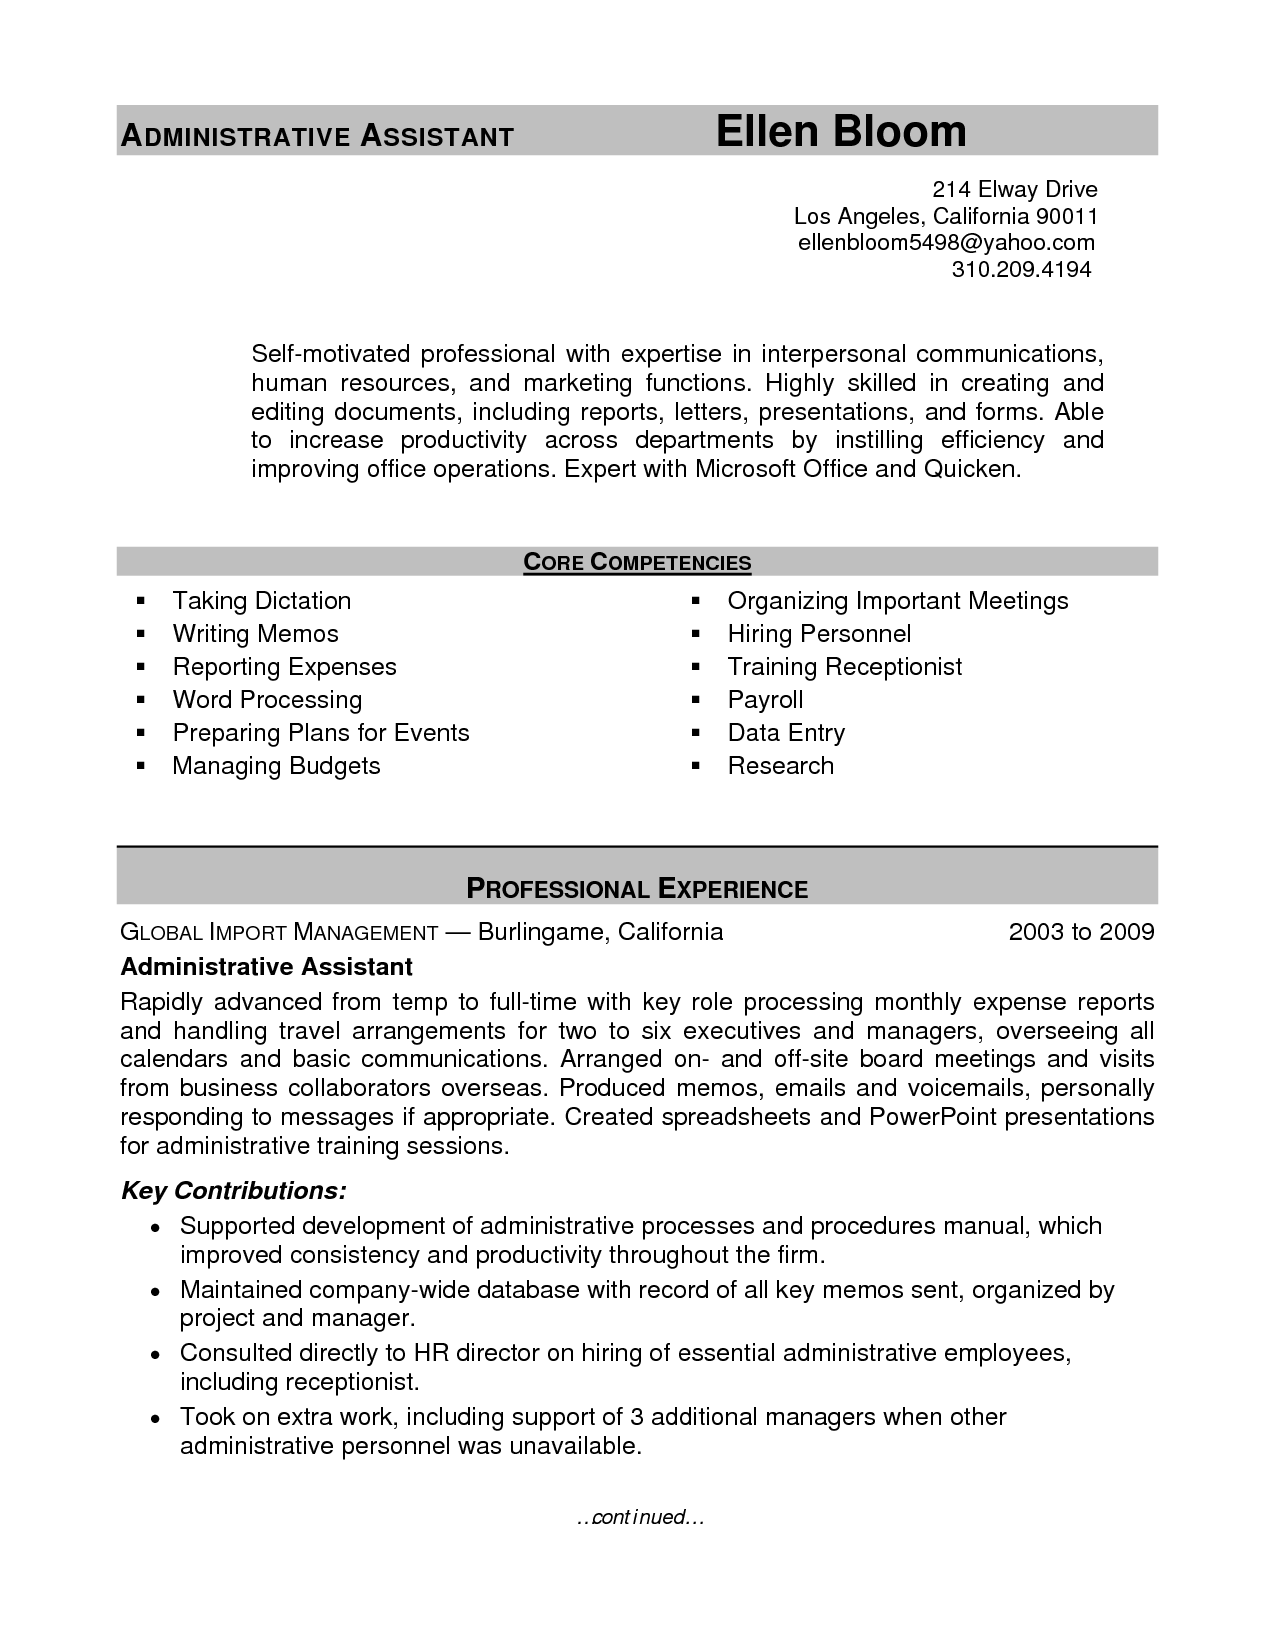 Medical Administrative Assistant Resume Bules Penantly Co